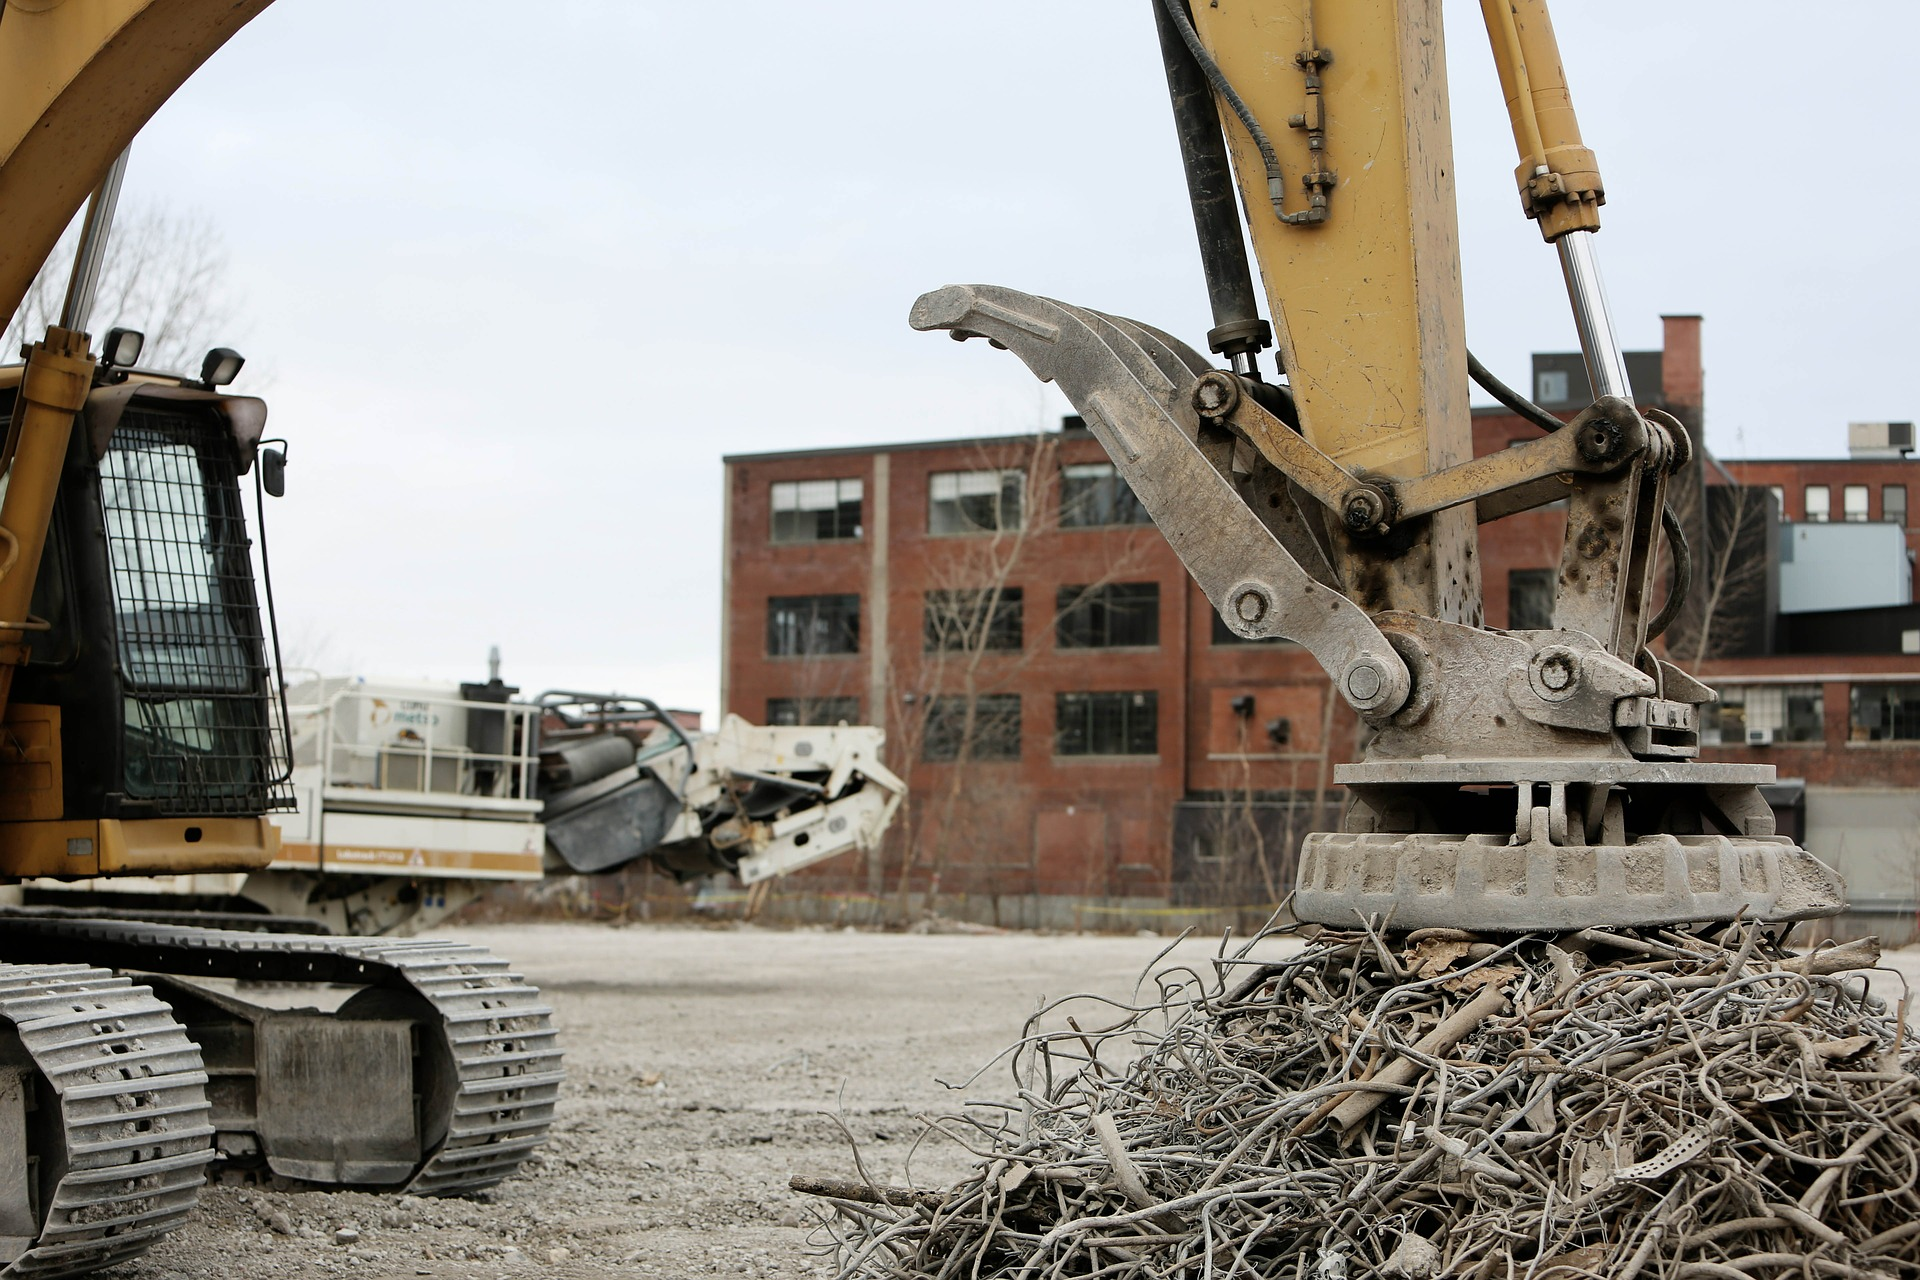 Construction Waste Recycling Photo